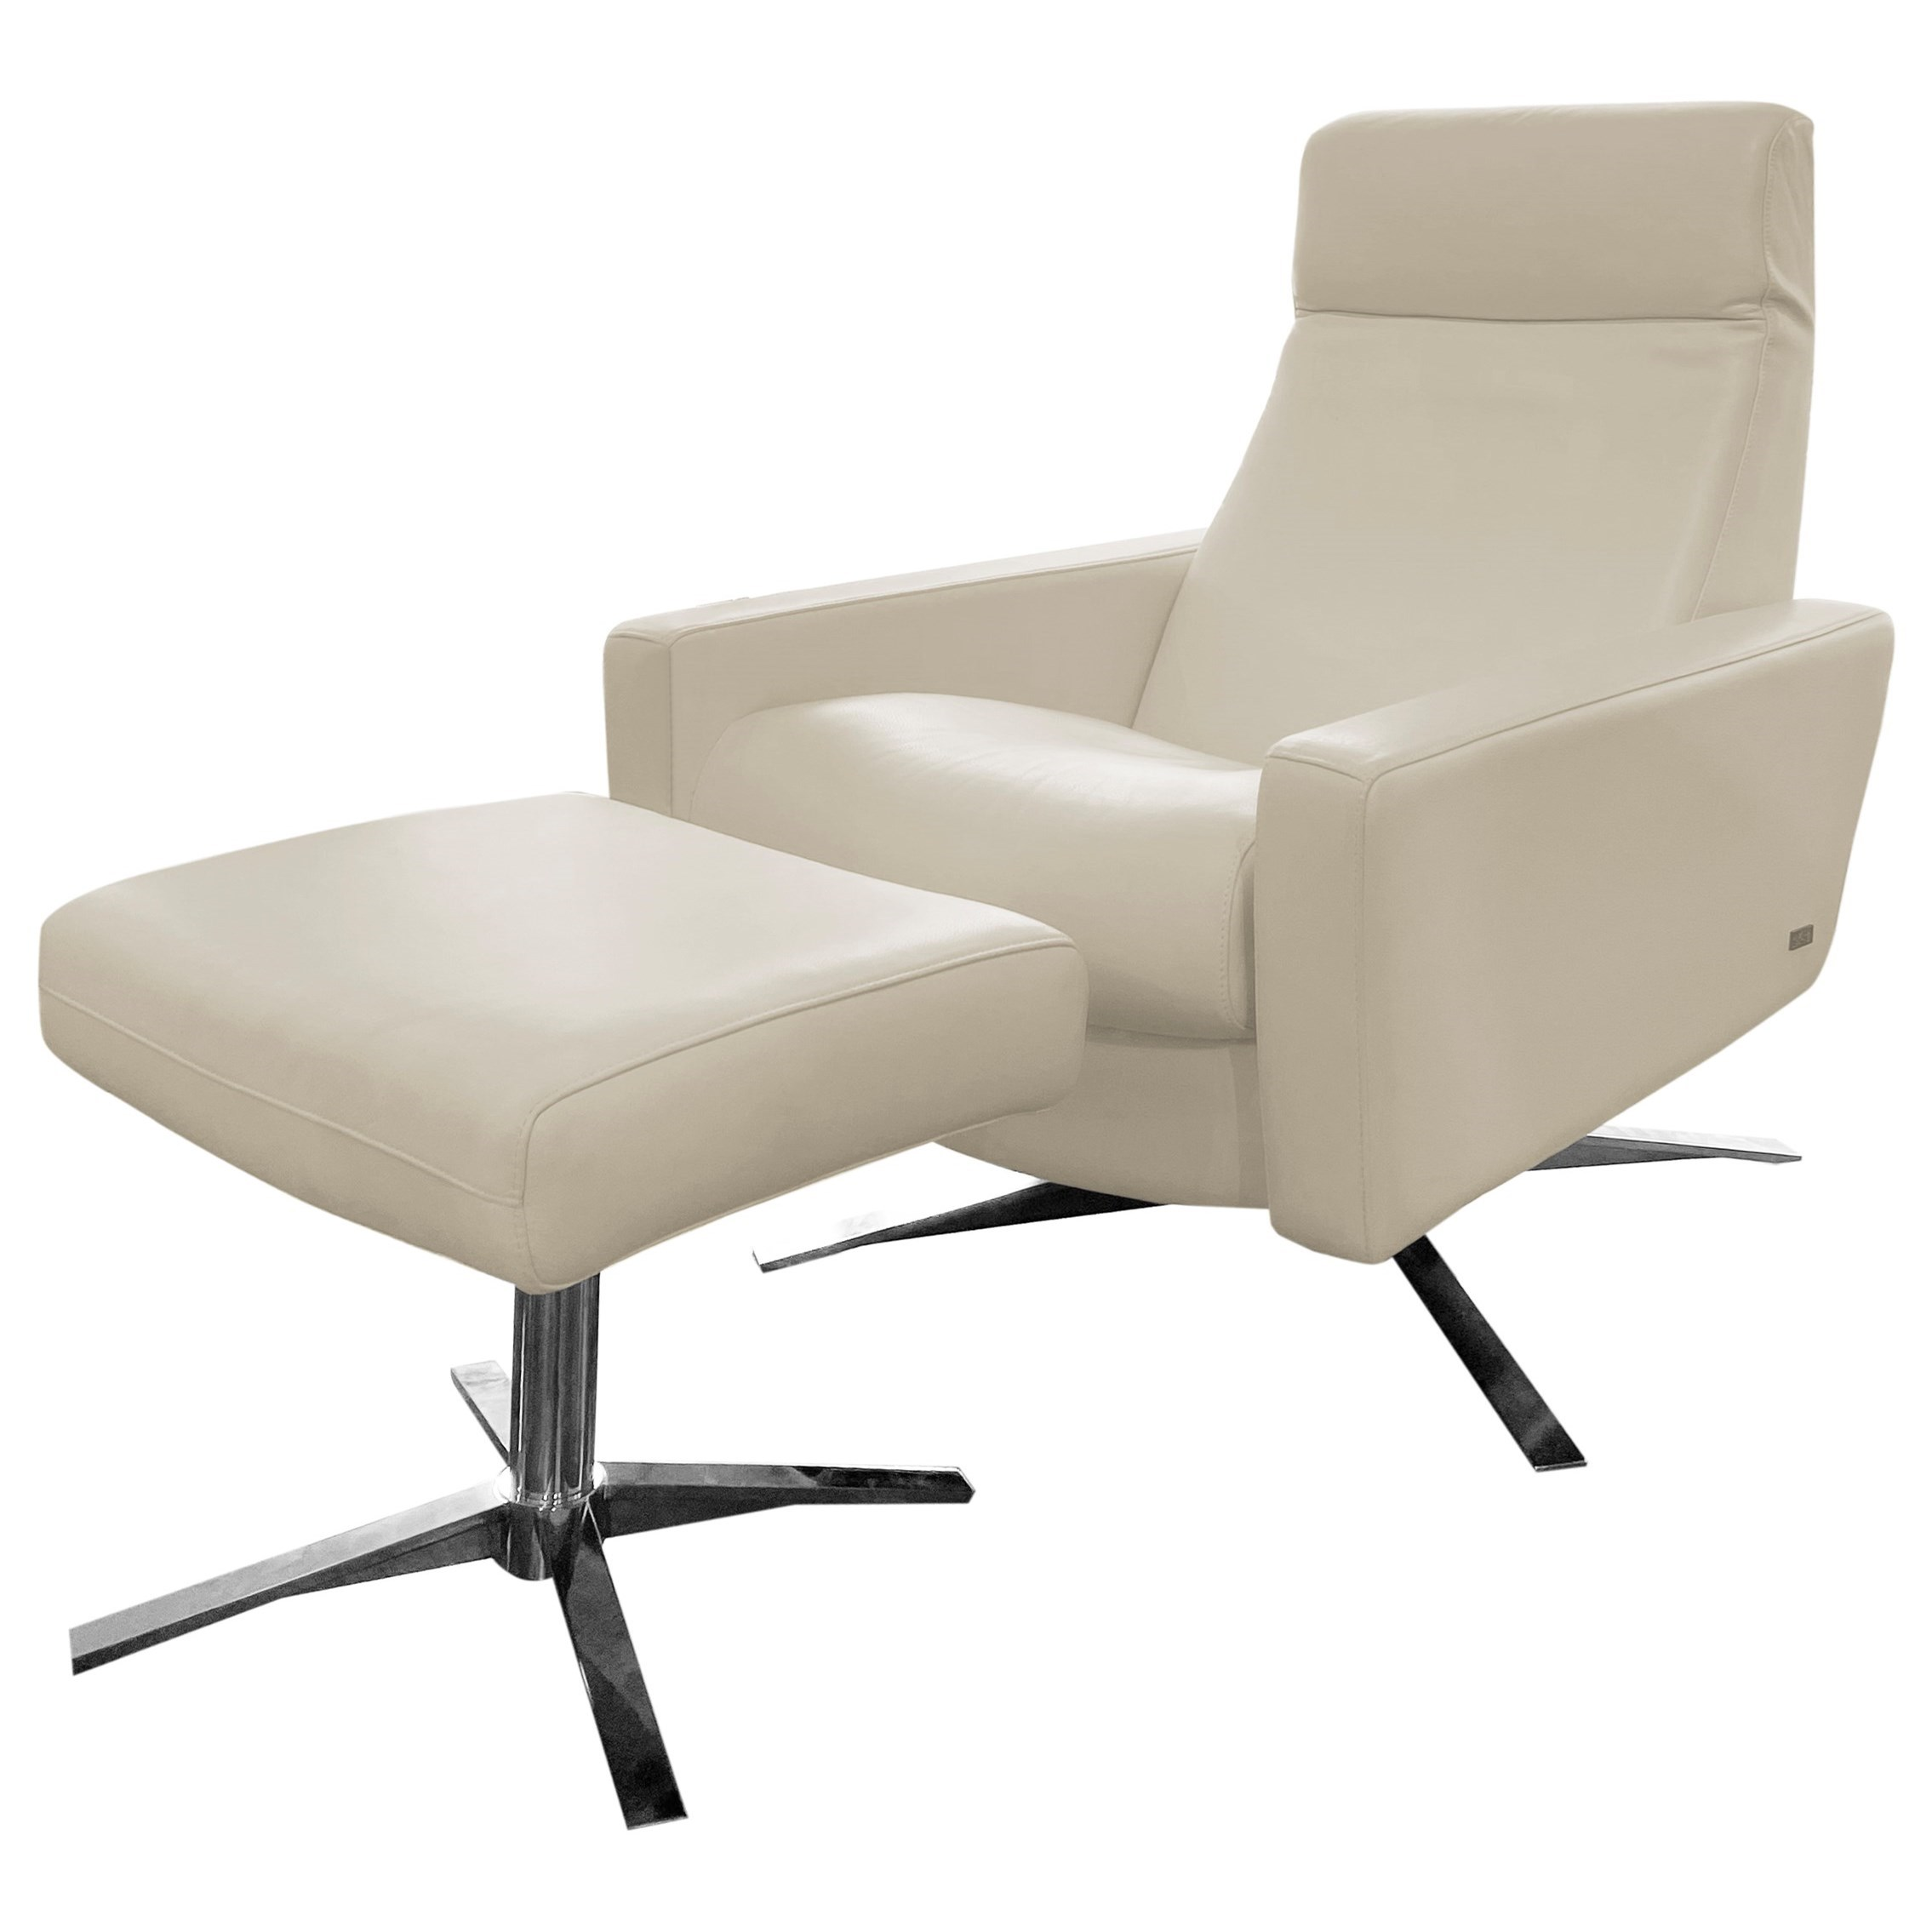 Cloud Pushback Chair and Ottoman by American Leather at C. S. Wo & Sons Hawaii